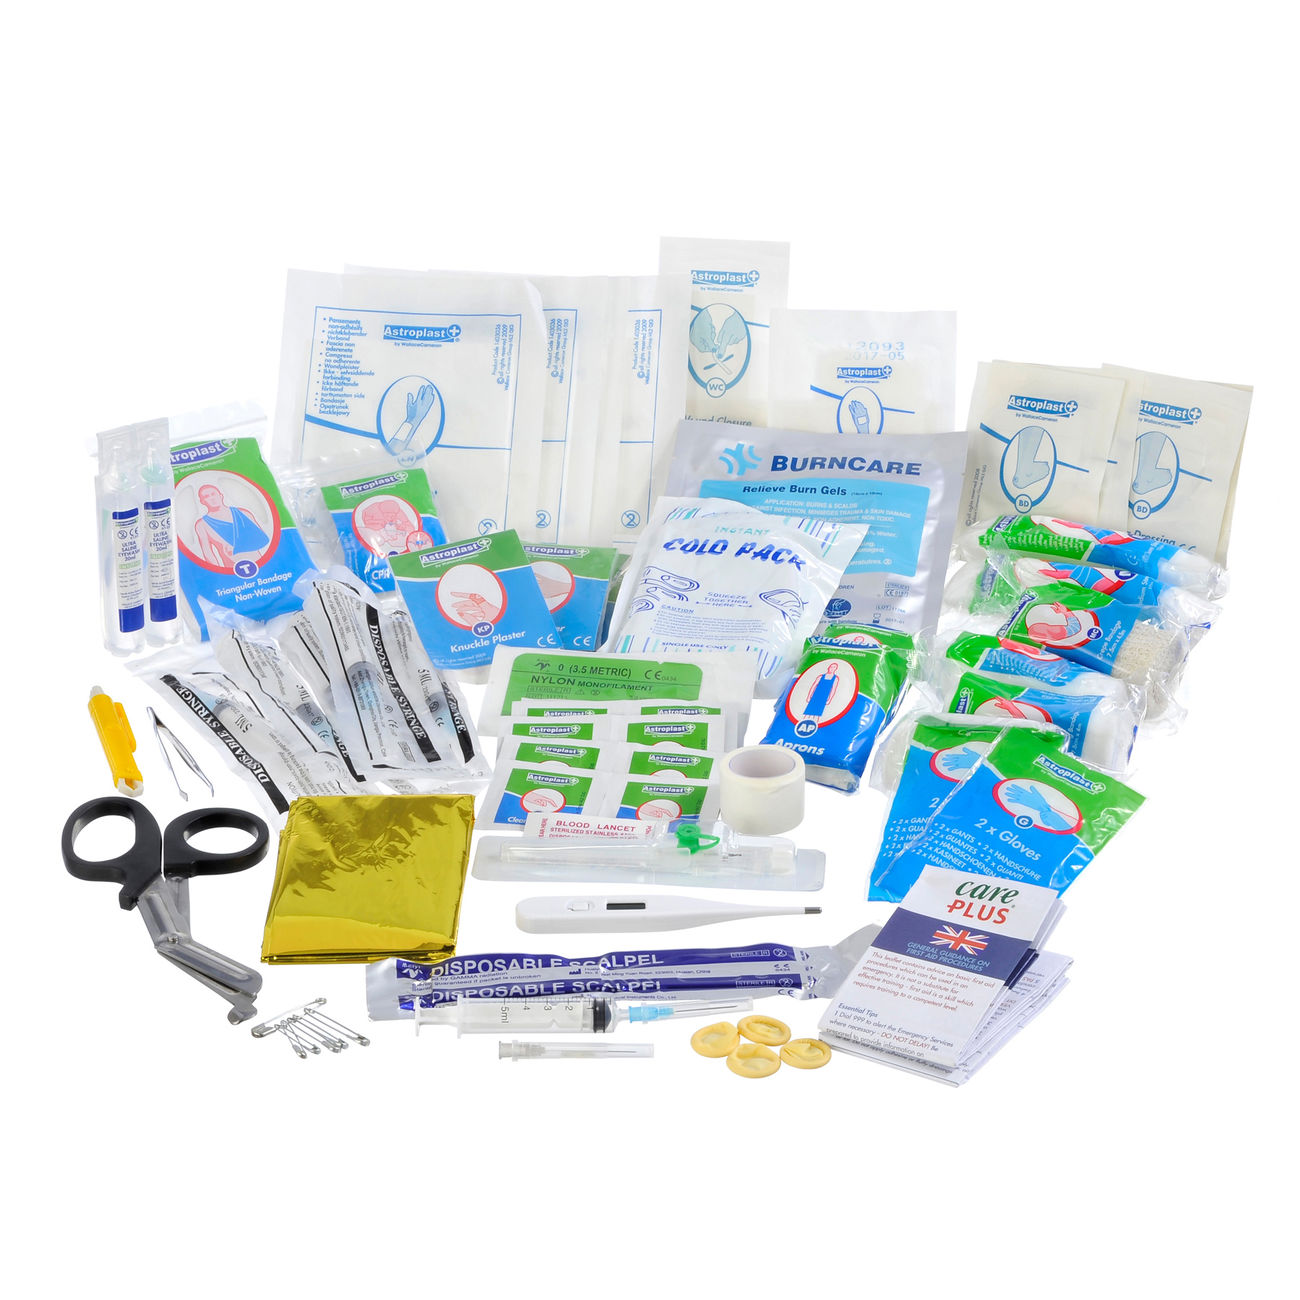 Care Plus First Aid Kit Professional 1